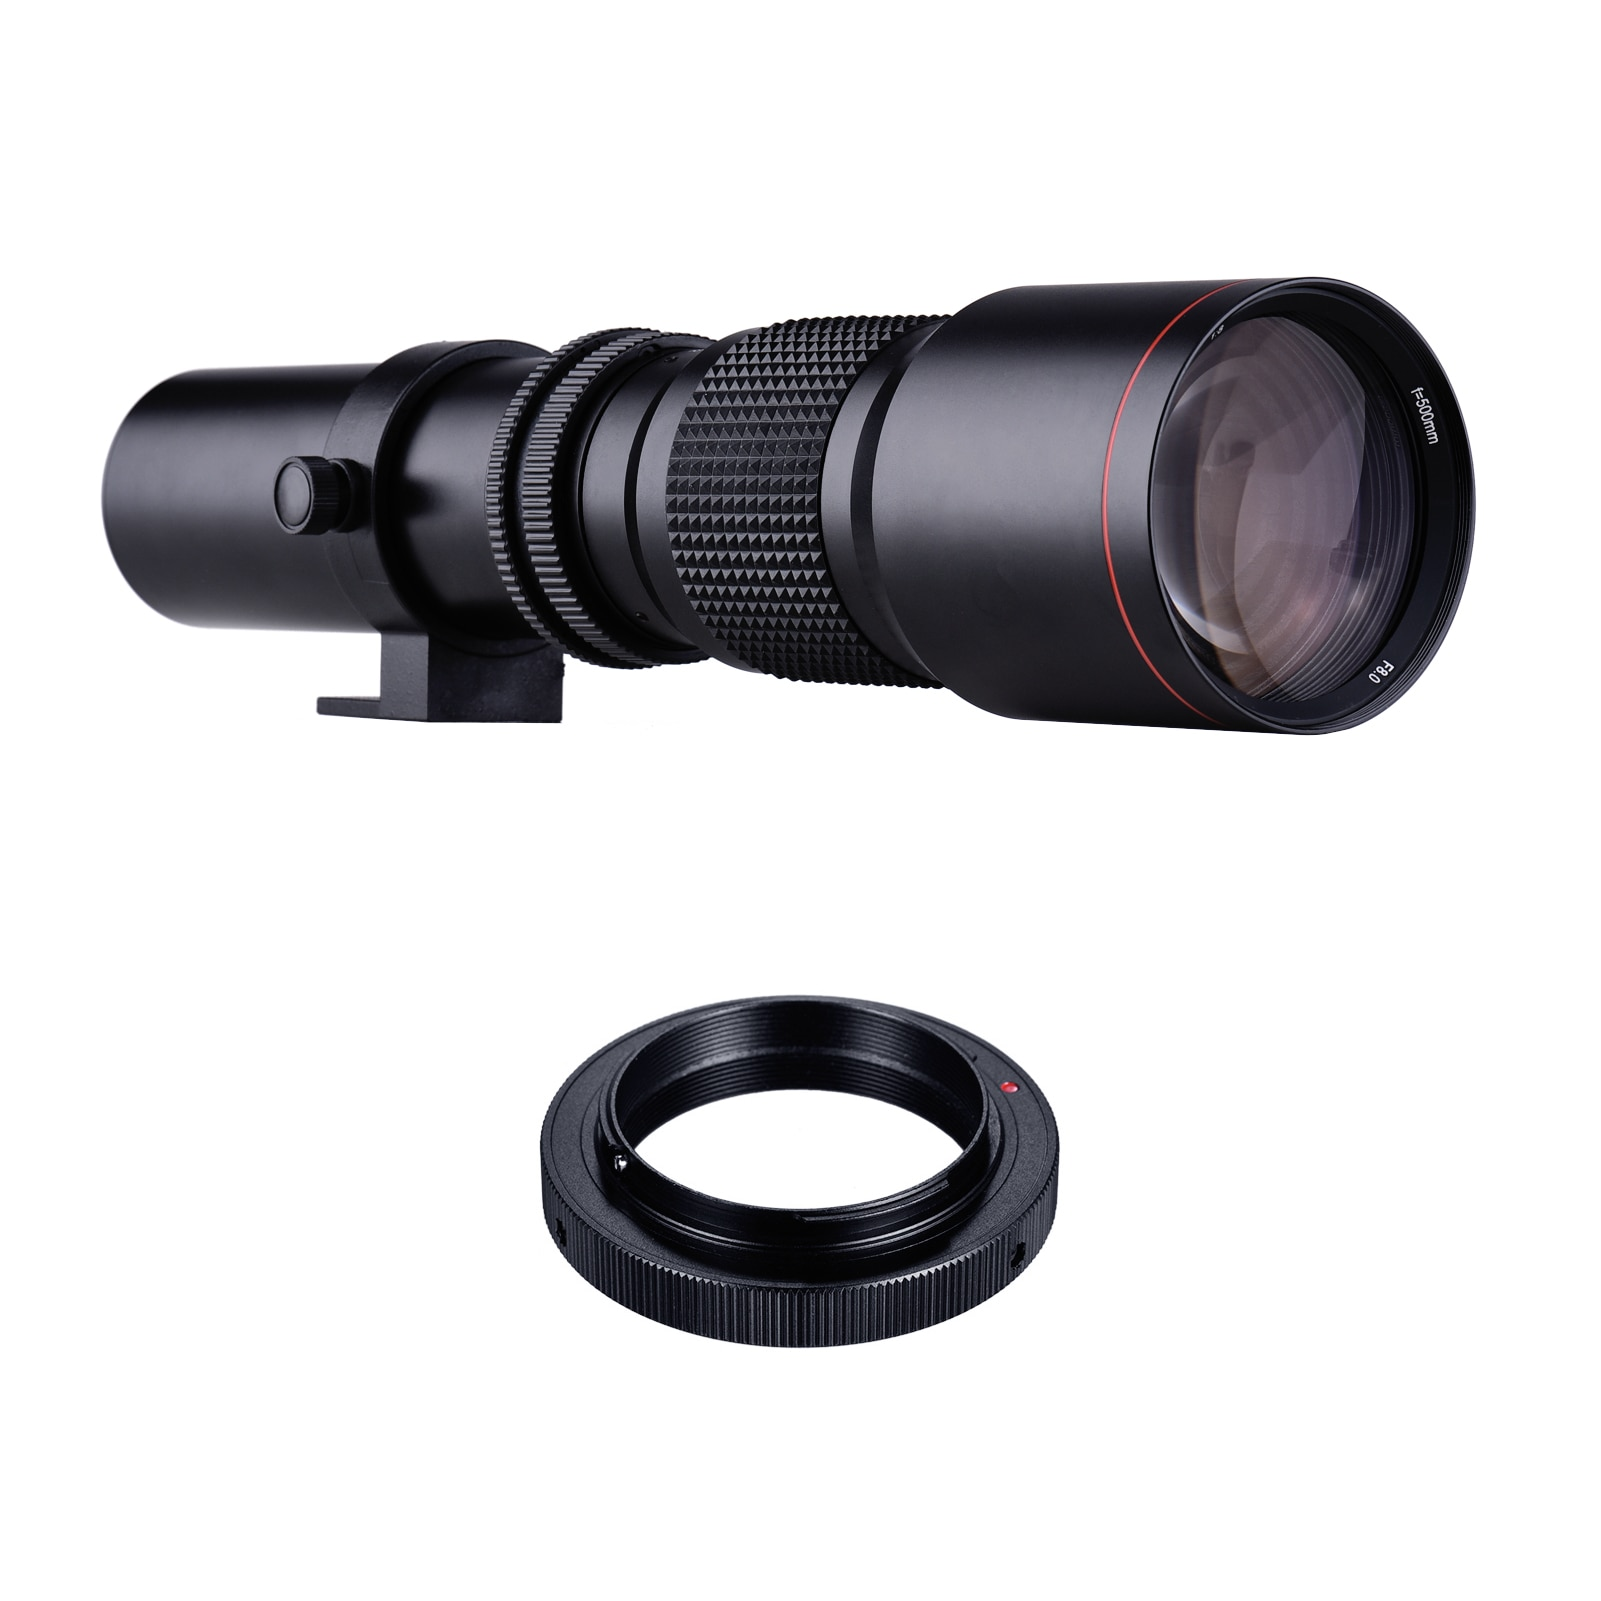 500mm F 8 0-32 Camera Lens Manual Zoom   T-Mount to F-Mount Adapter Ring Kit Replacement for Nikon Cameras Photography Studio